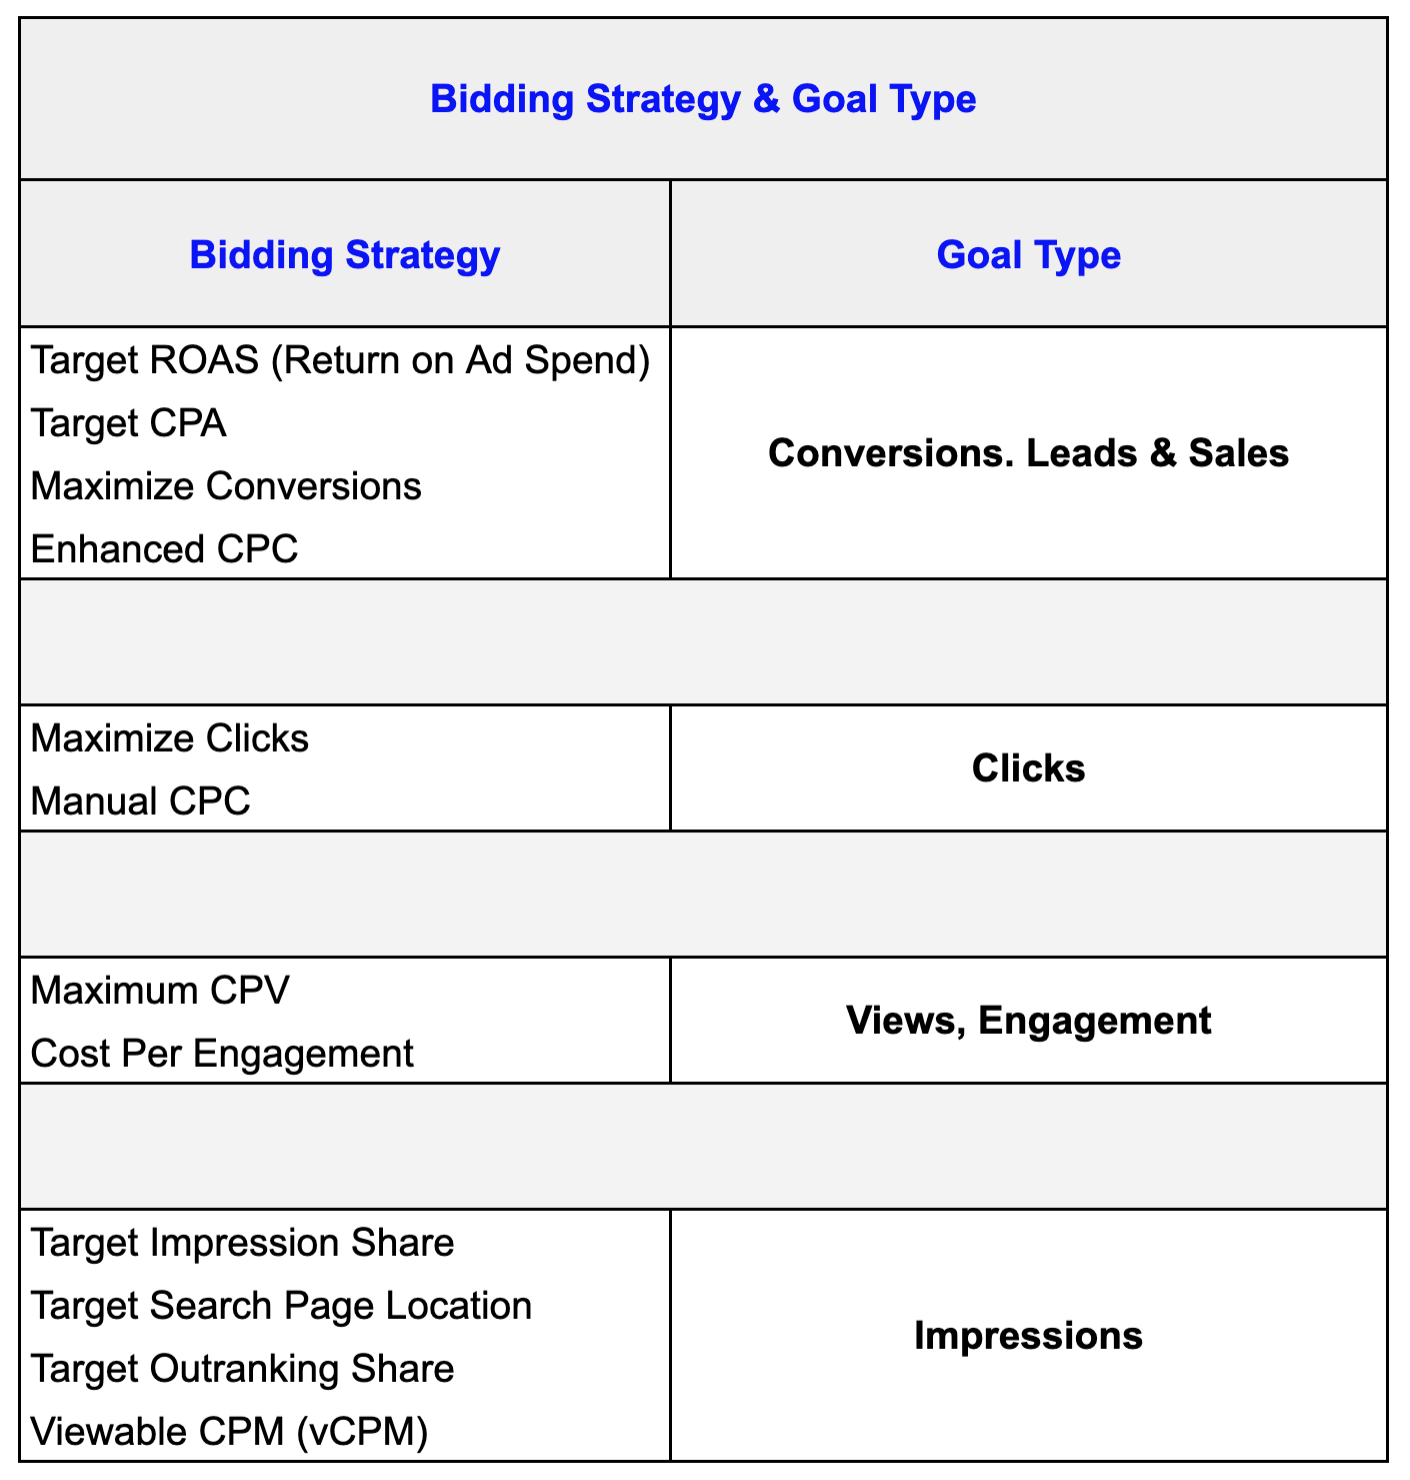 Google Ads Bidding Strategies & Goal Types